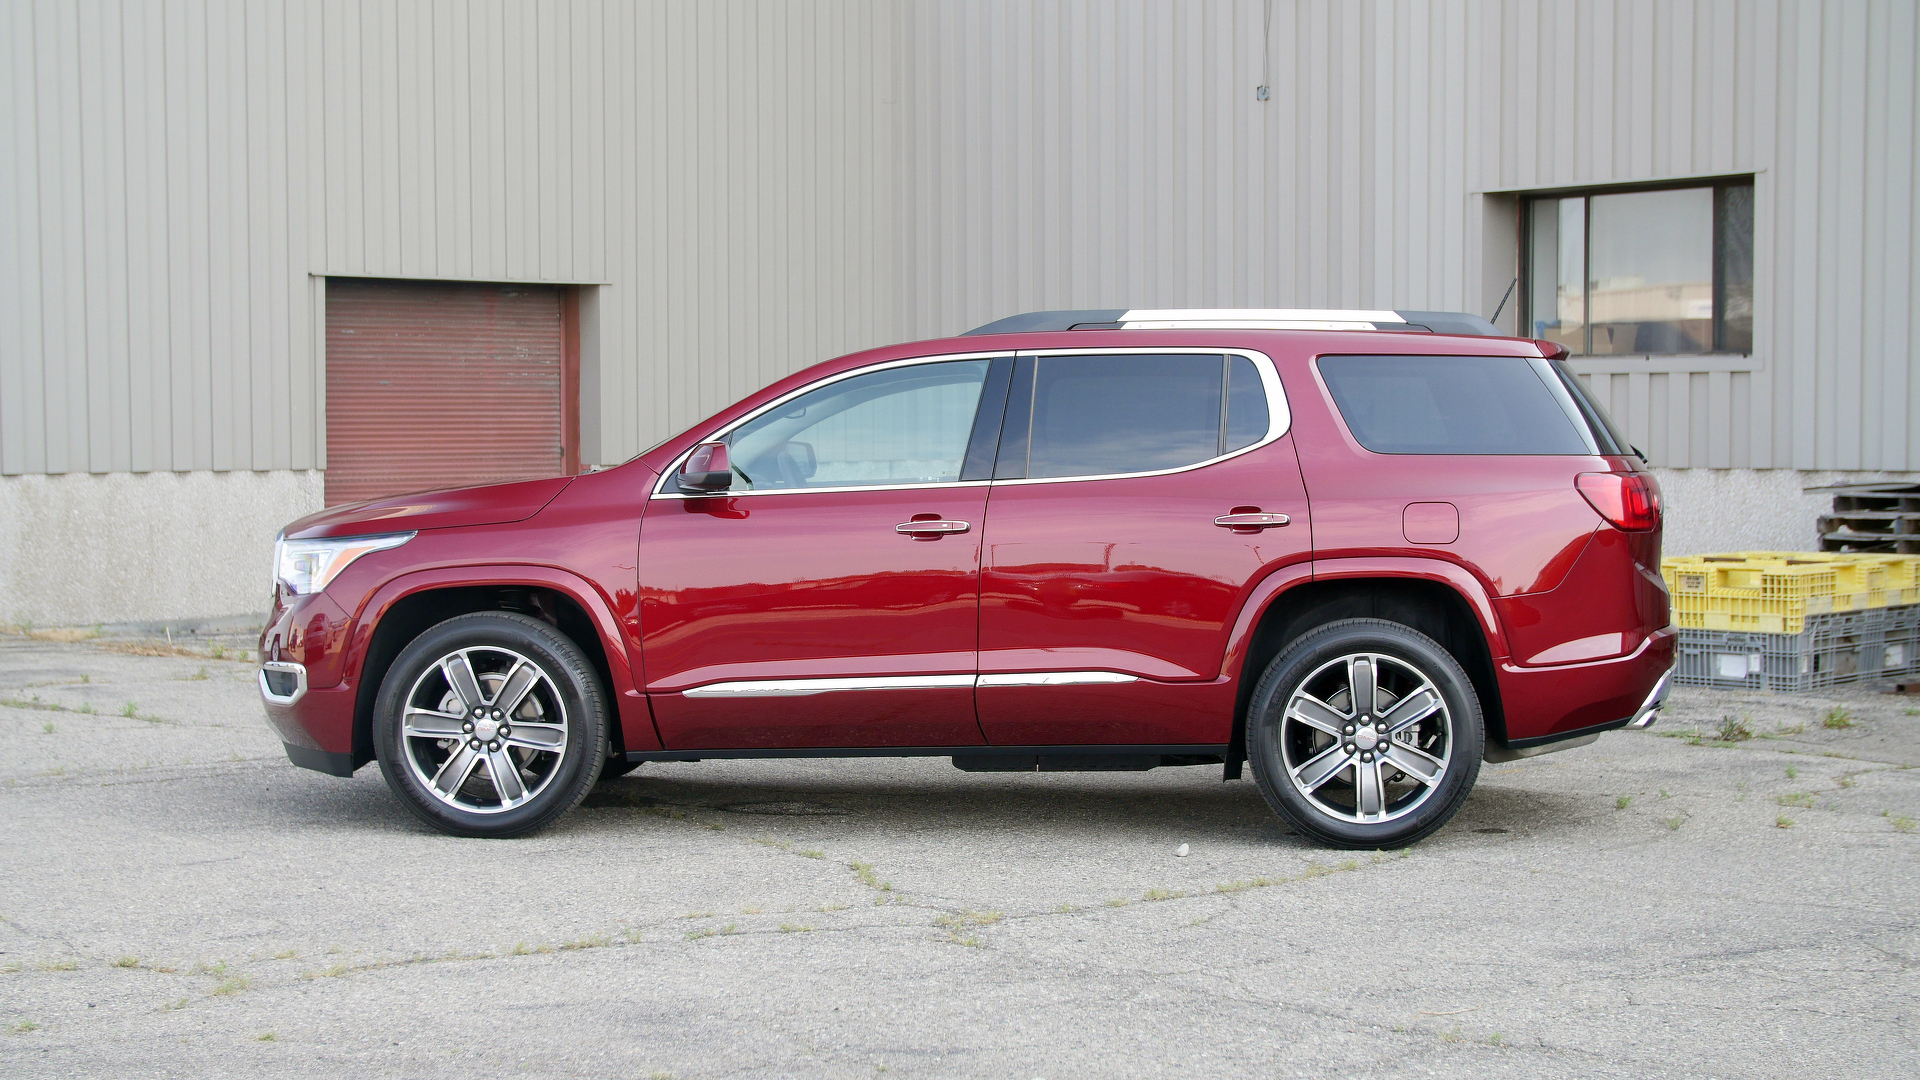 Gmc Acadia Denali For Sale >> 2017 Gmc Acadia Denali Why Buy